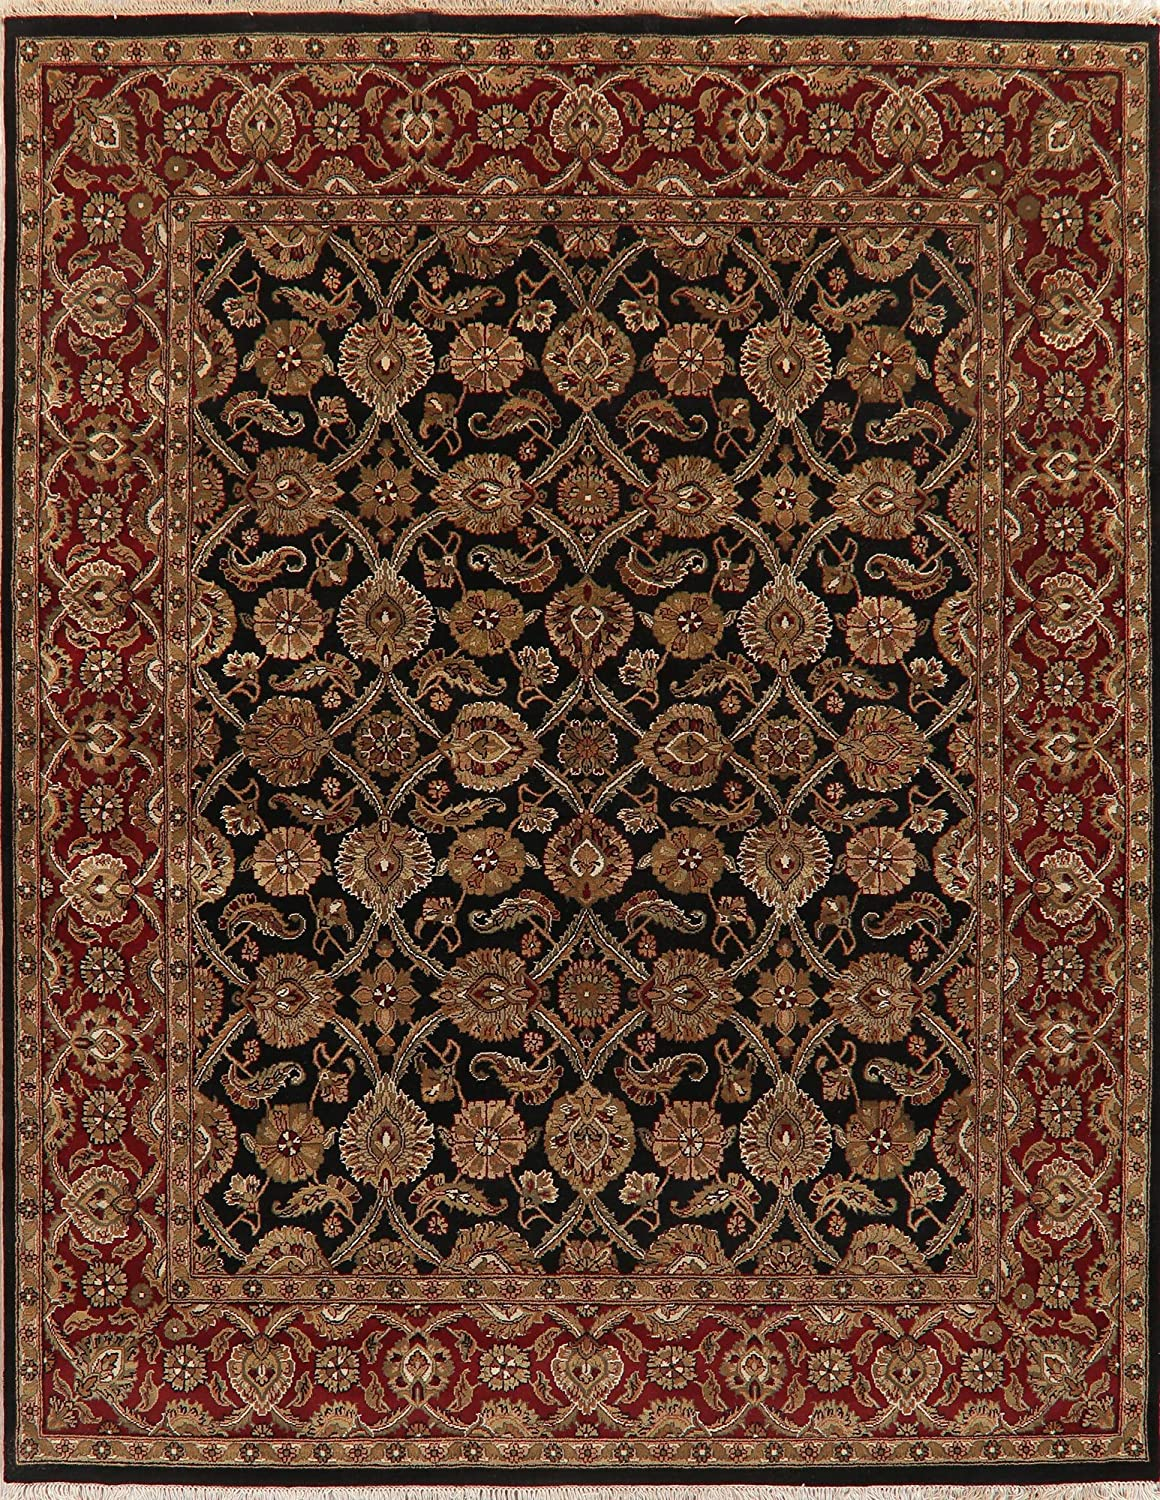 Amazon Com 8x10 Black Burgundy Agra Oriental Area Rug Floral New Zealand Wool Hand Knotted 10 0 X 7 11 Kitchen Dining